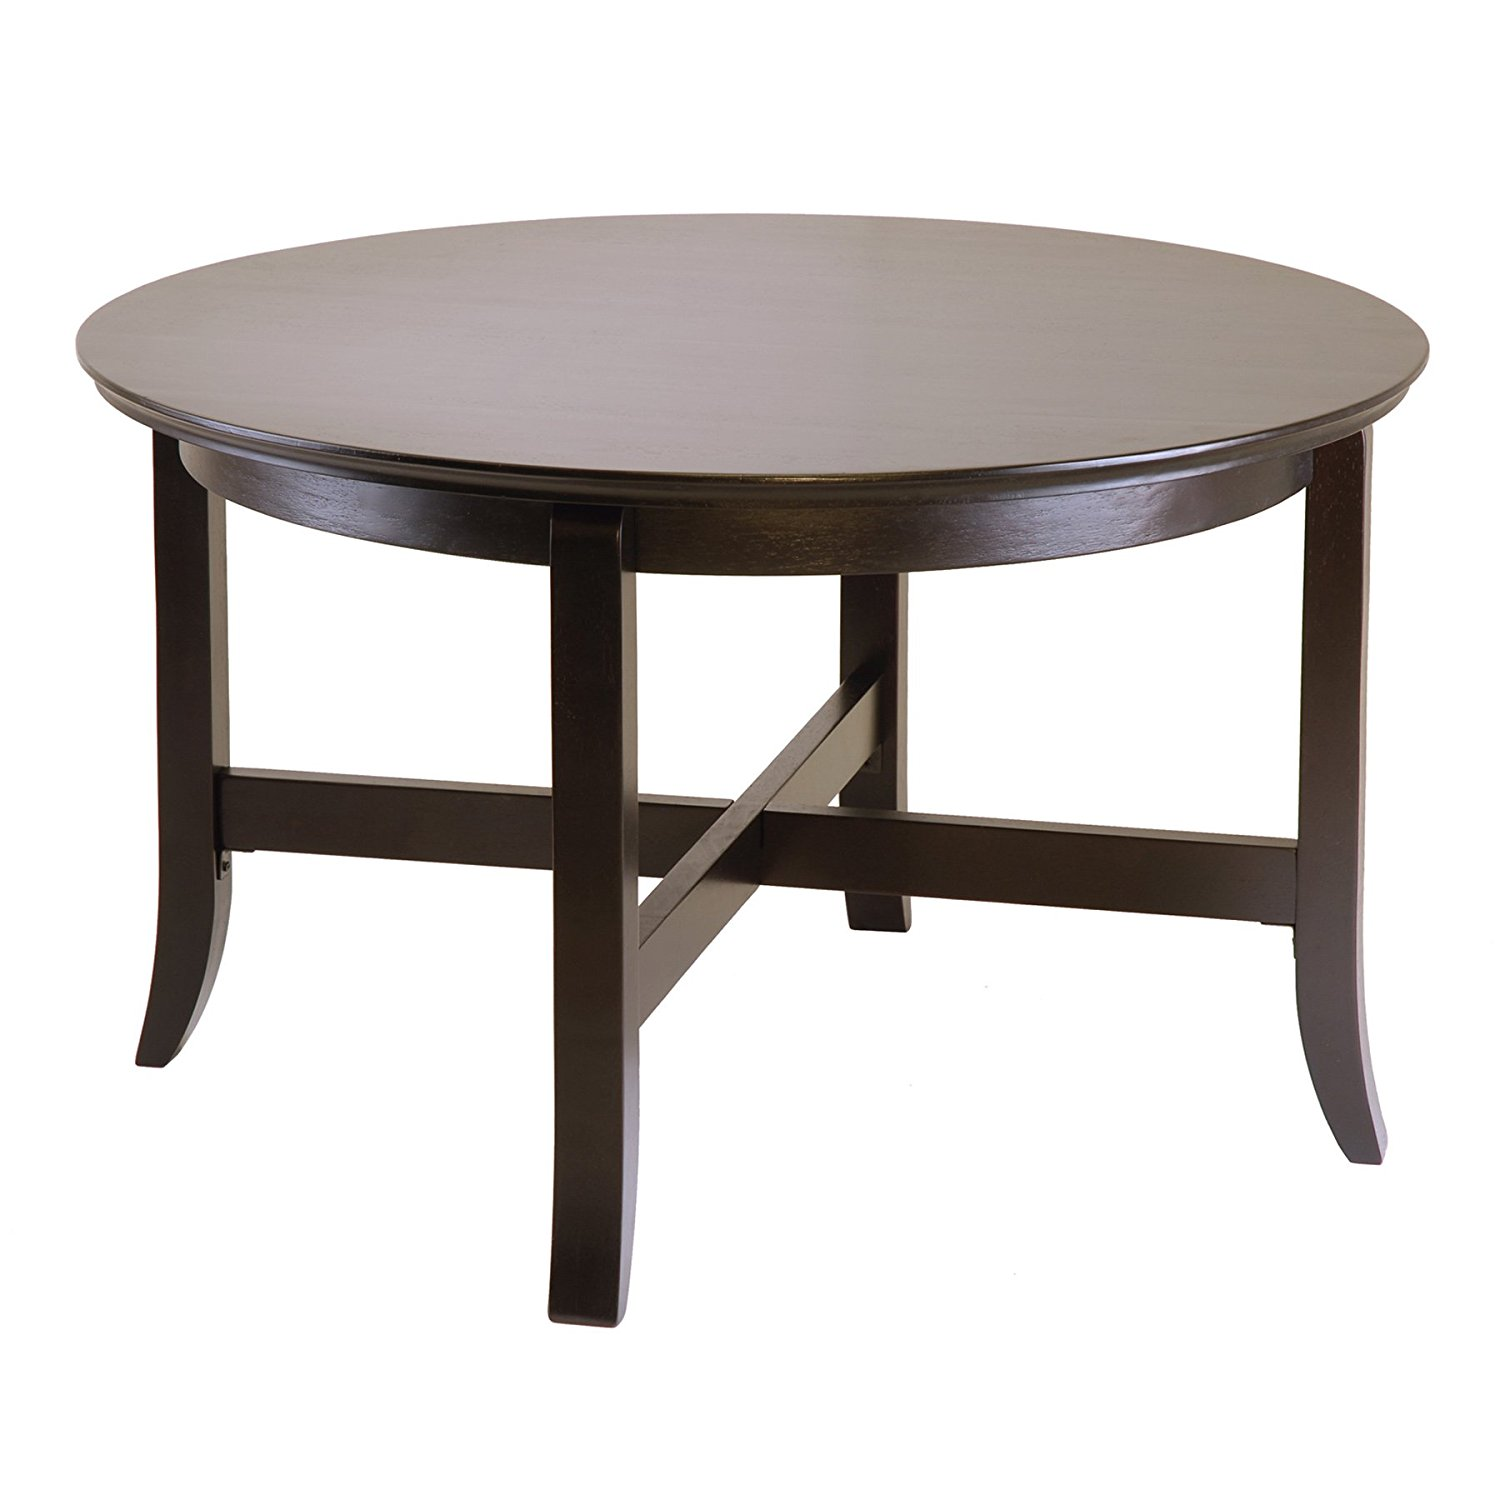 Cheap Marble Top Coffee Table: Cheap Coffee Tables: The Ultimate Guide To Coffee Tables